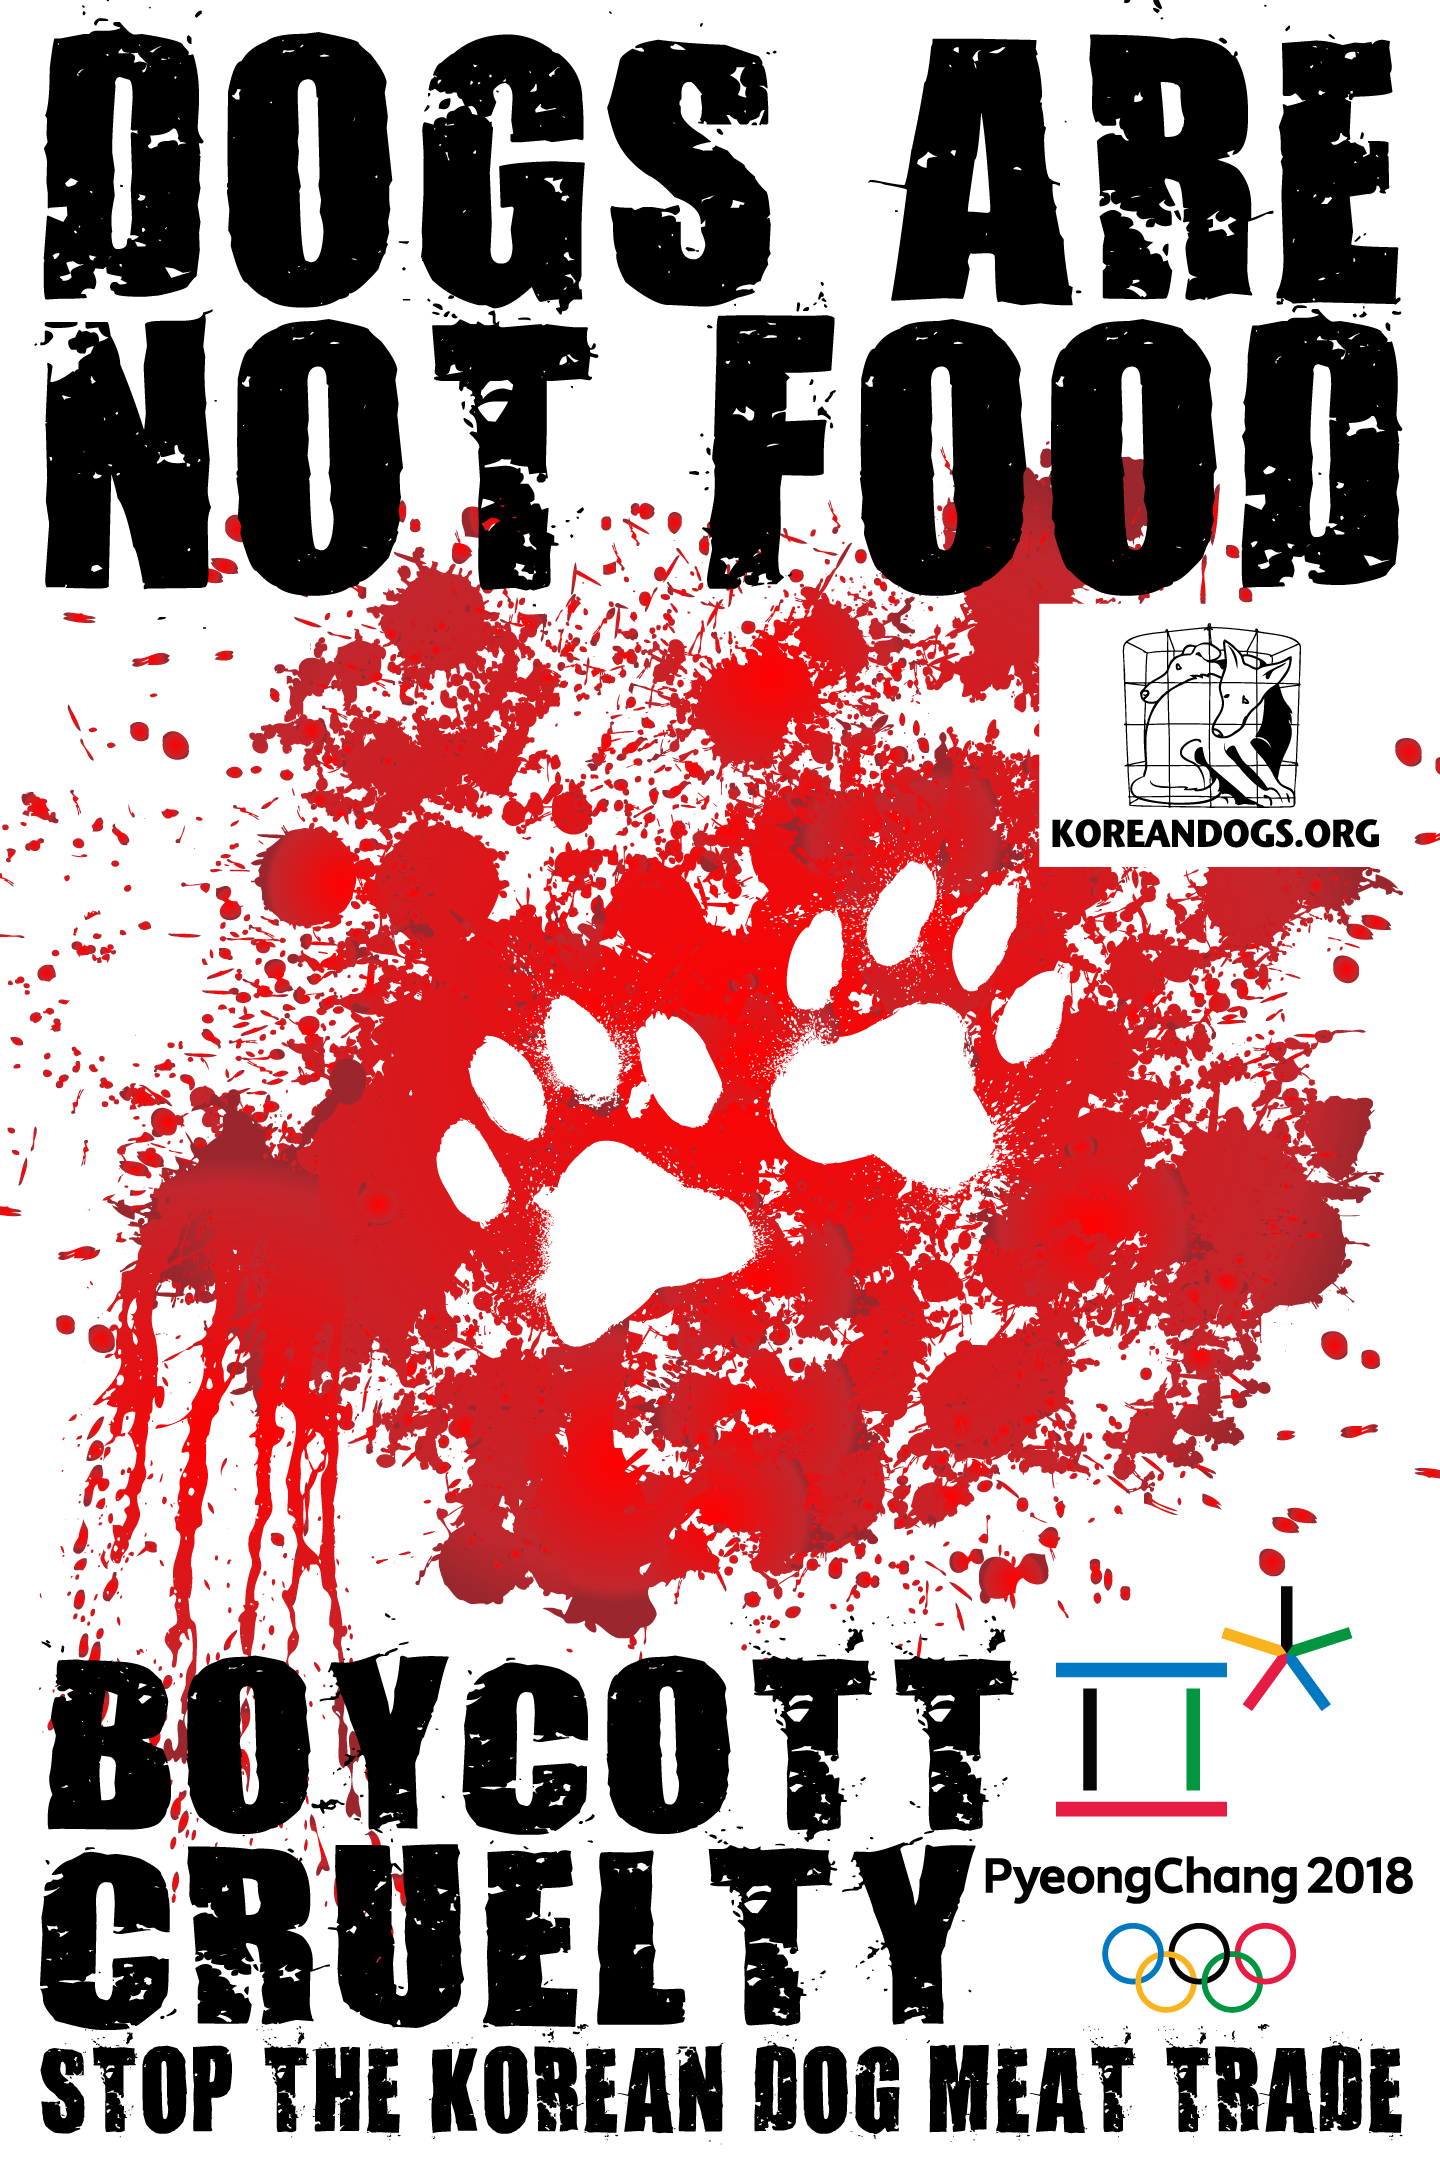 Boycott PyeongChang 2018 Action Center